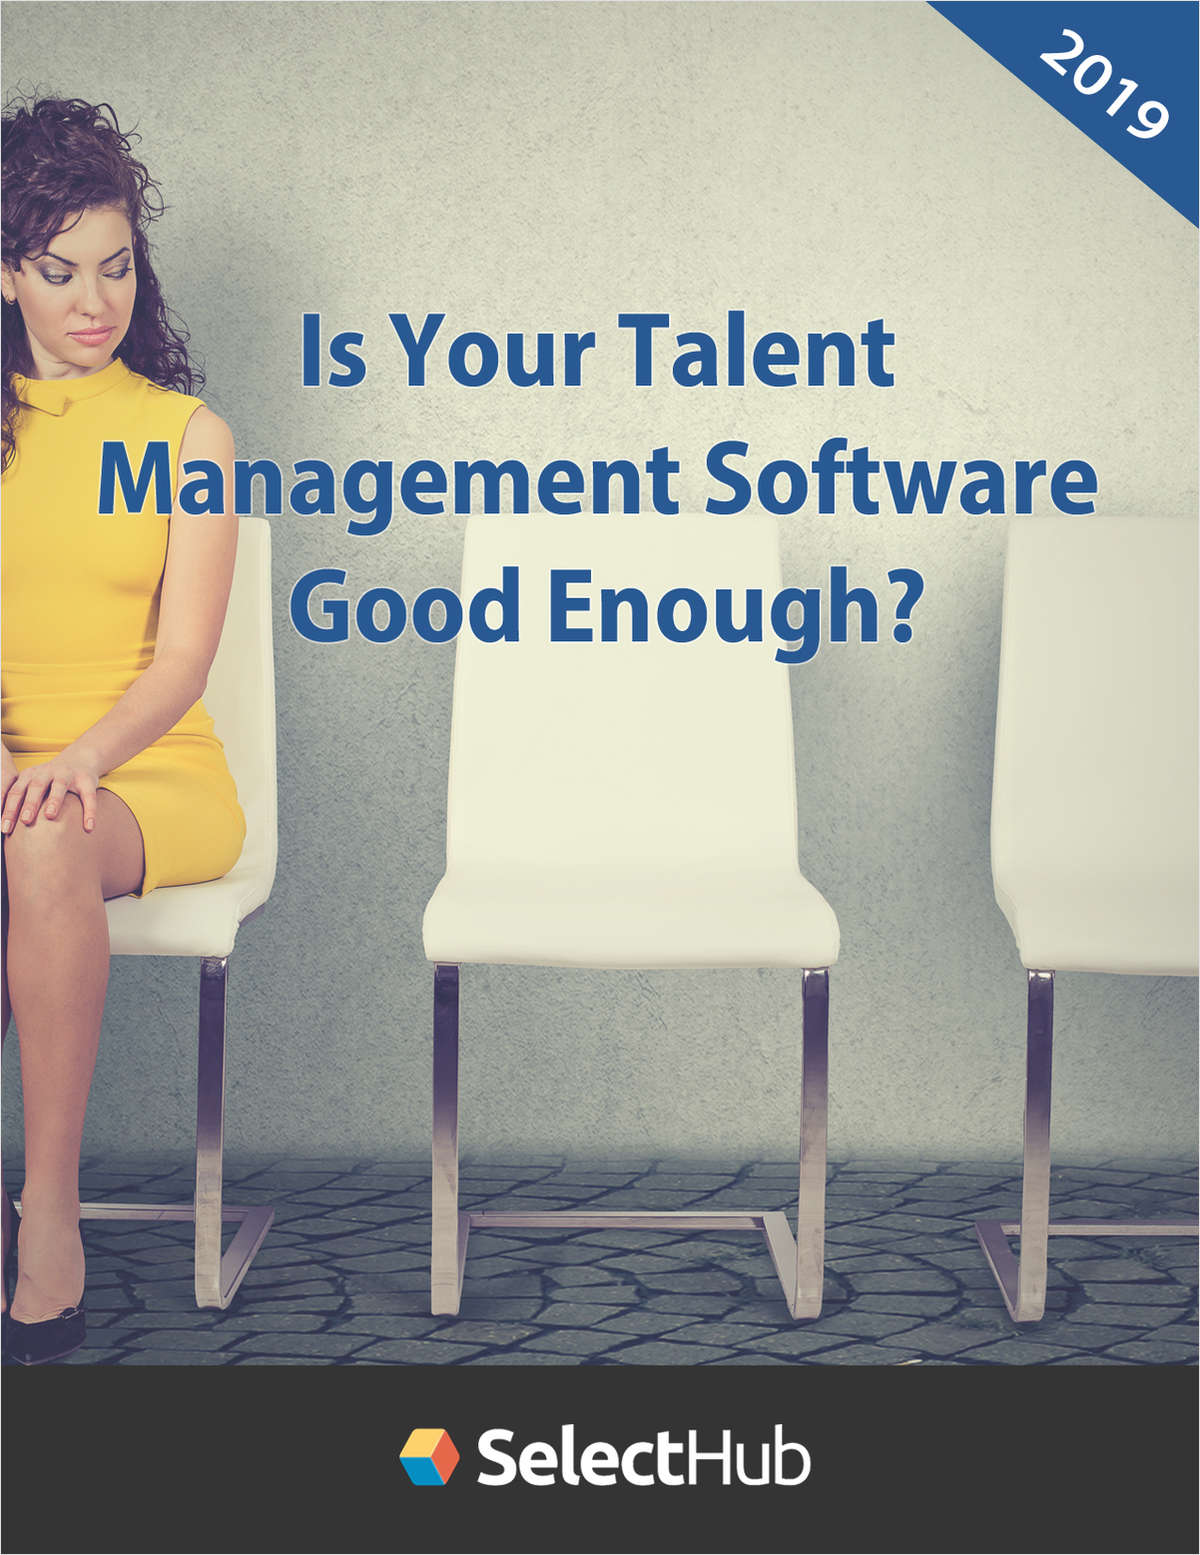 In an Era of Record Job Openings, Is Your Talent Management Software Good Enough?